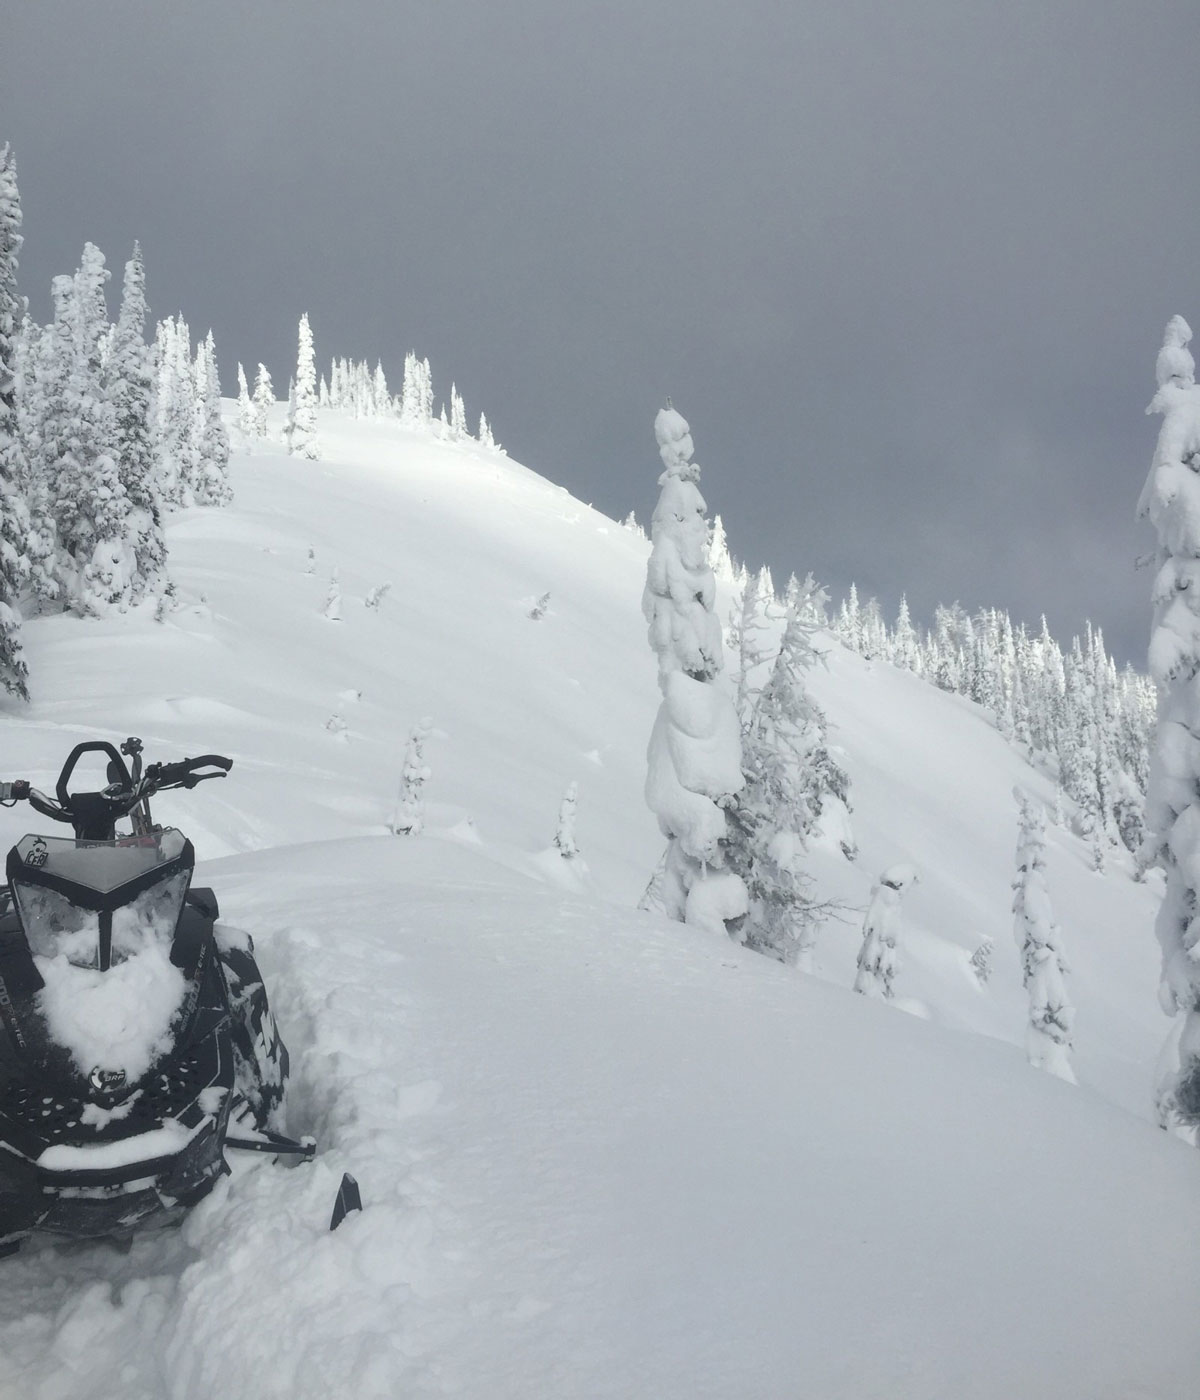 The final storm of the wave brought 55cm of snow to our heli skiing terrain